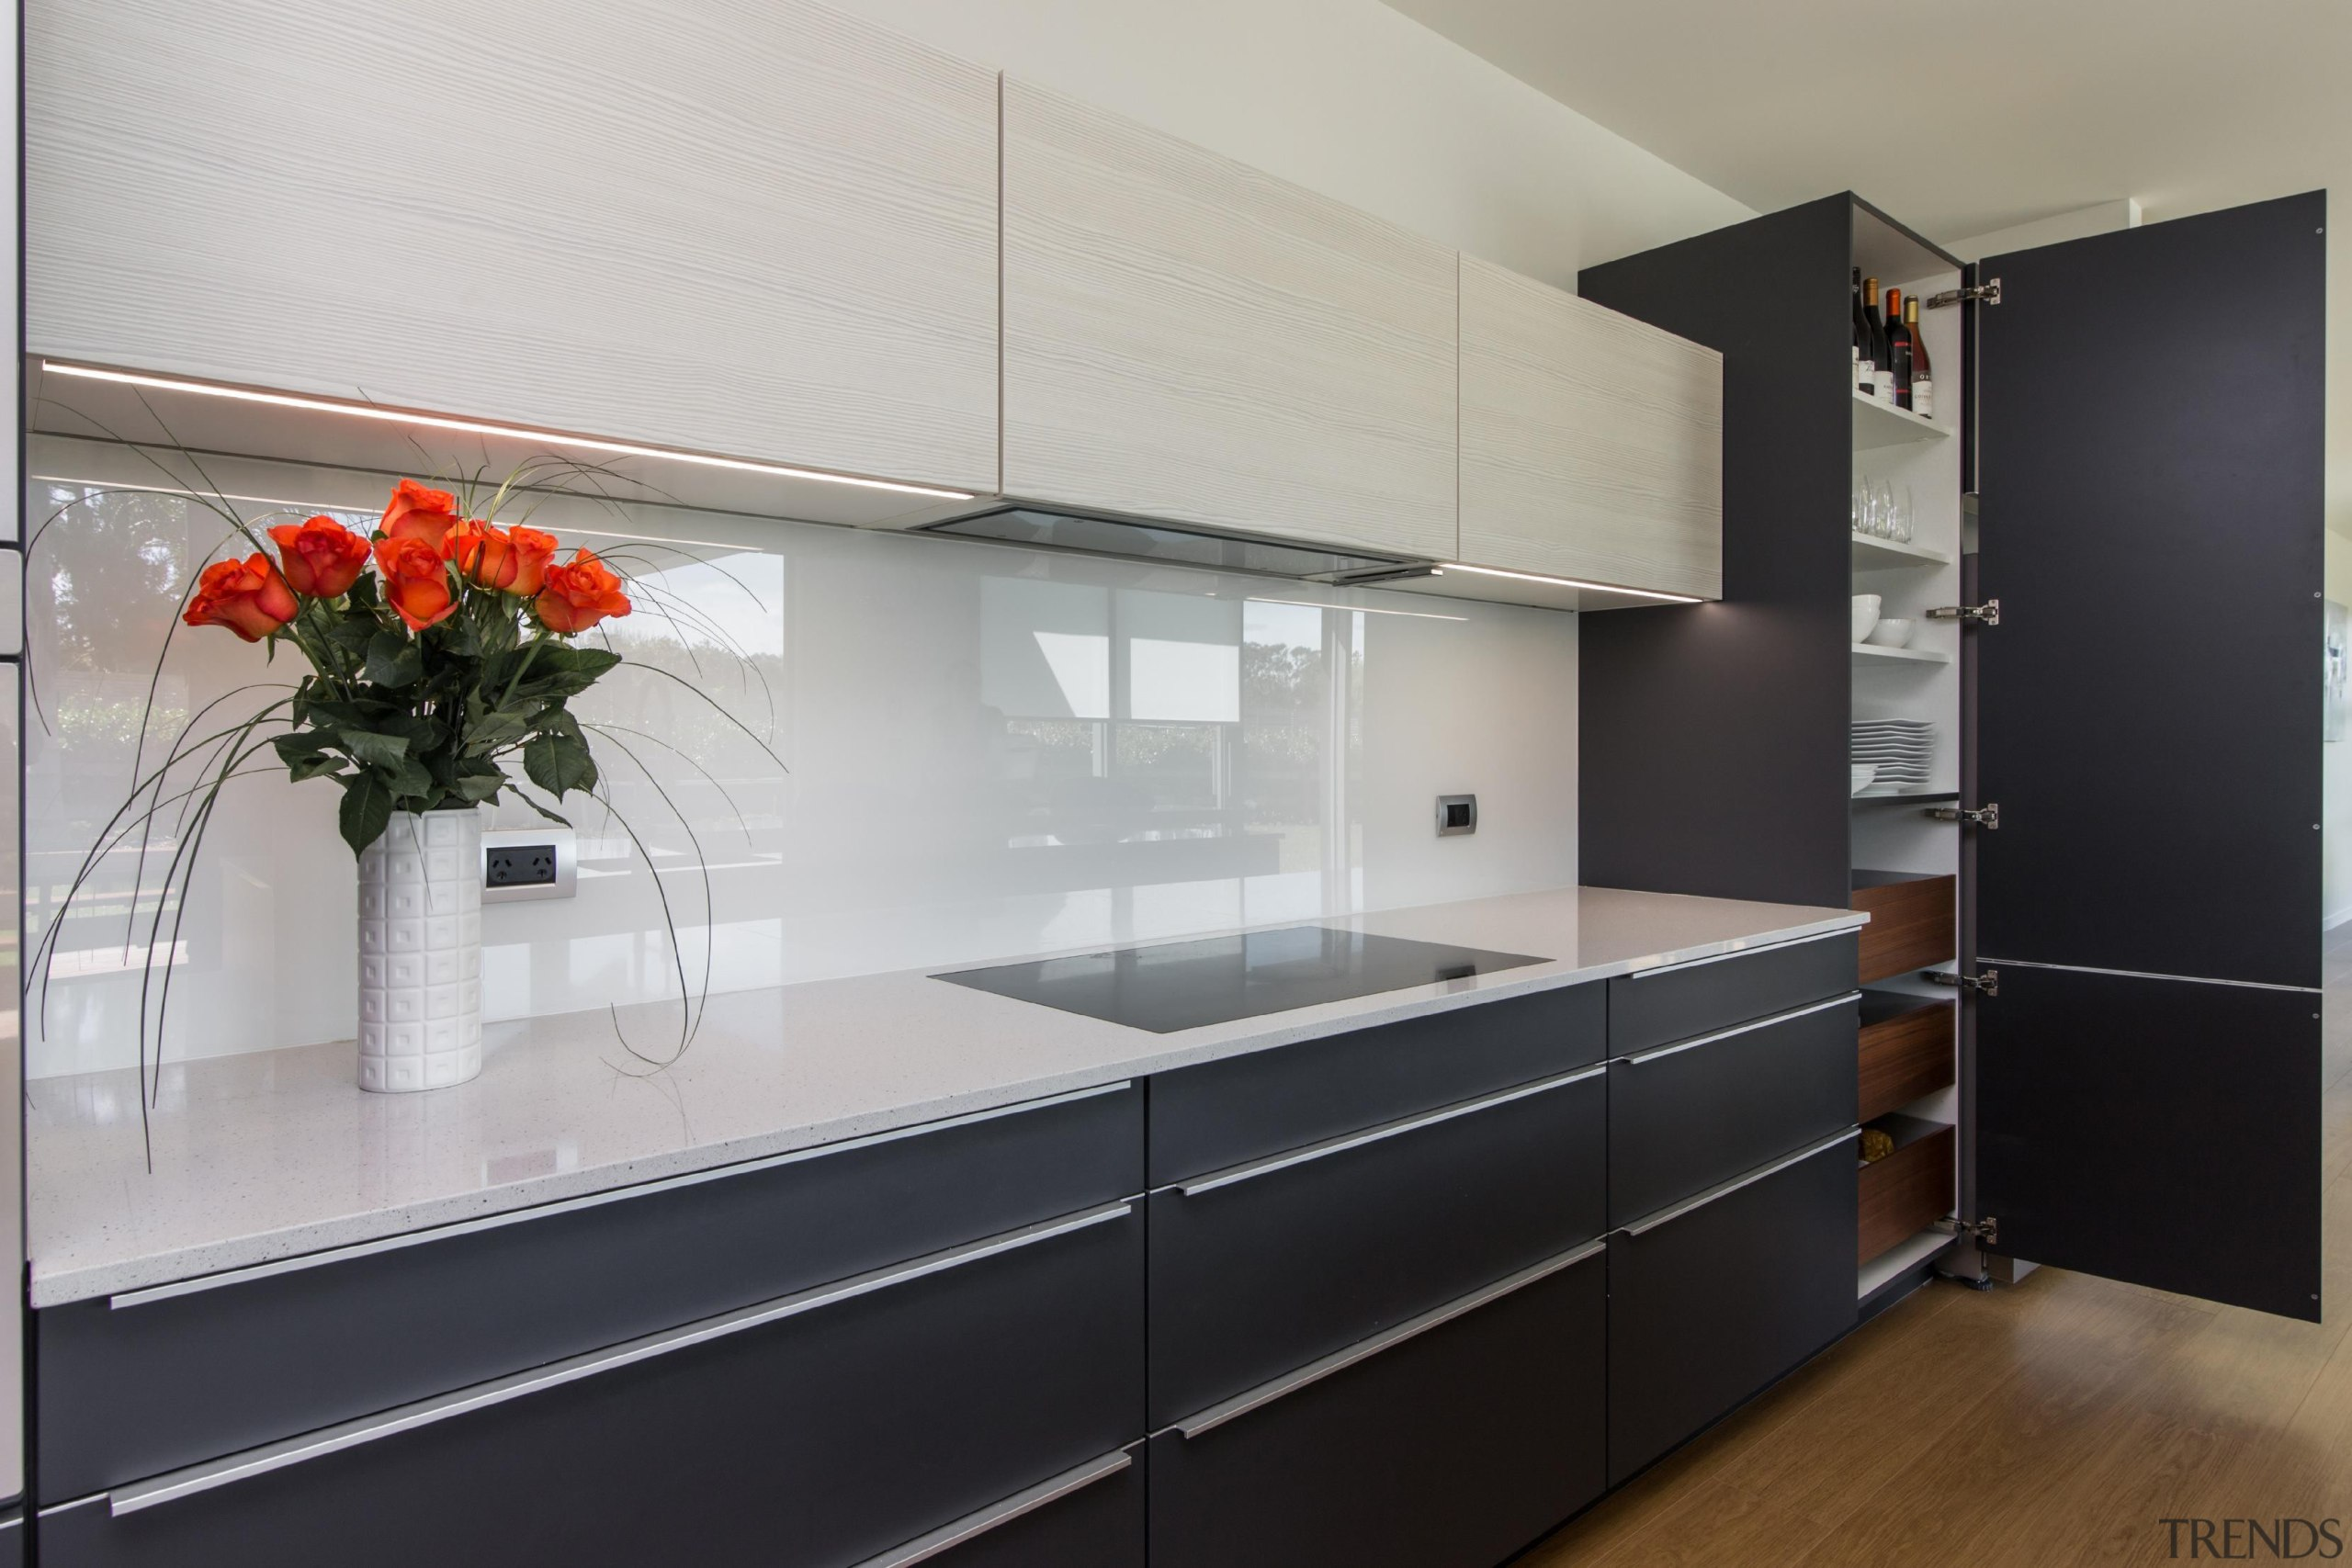 Great use of space for kitchen storageFor more cabinetry, countertop, interior design, kitchen, gray, black